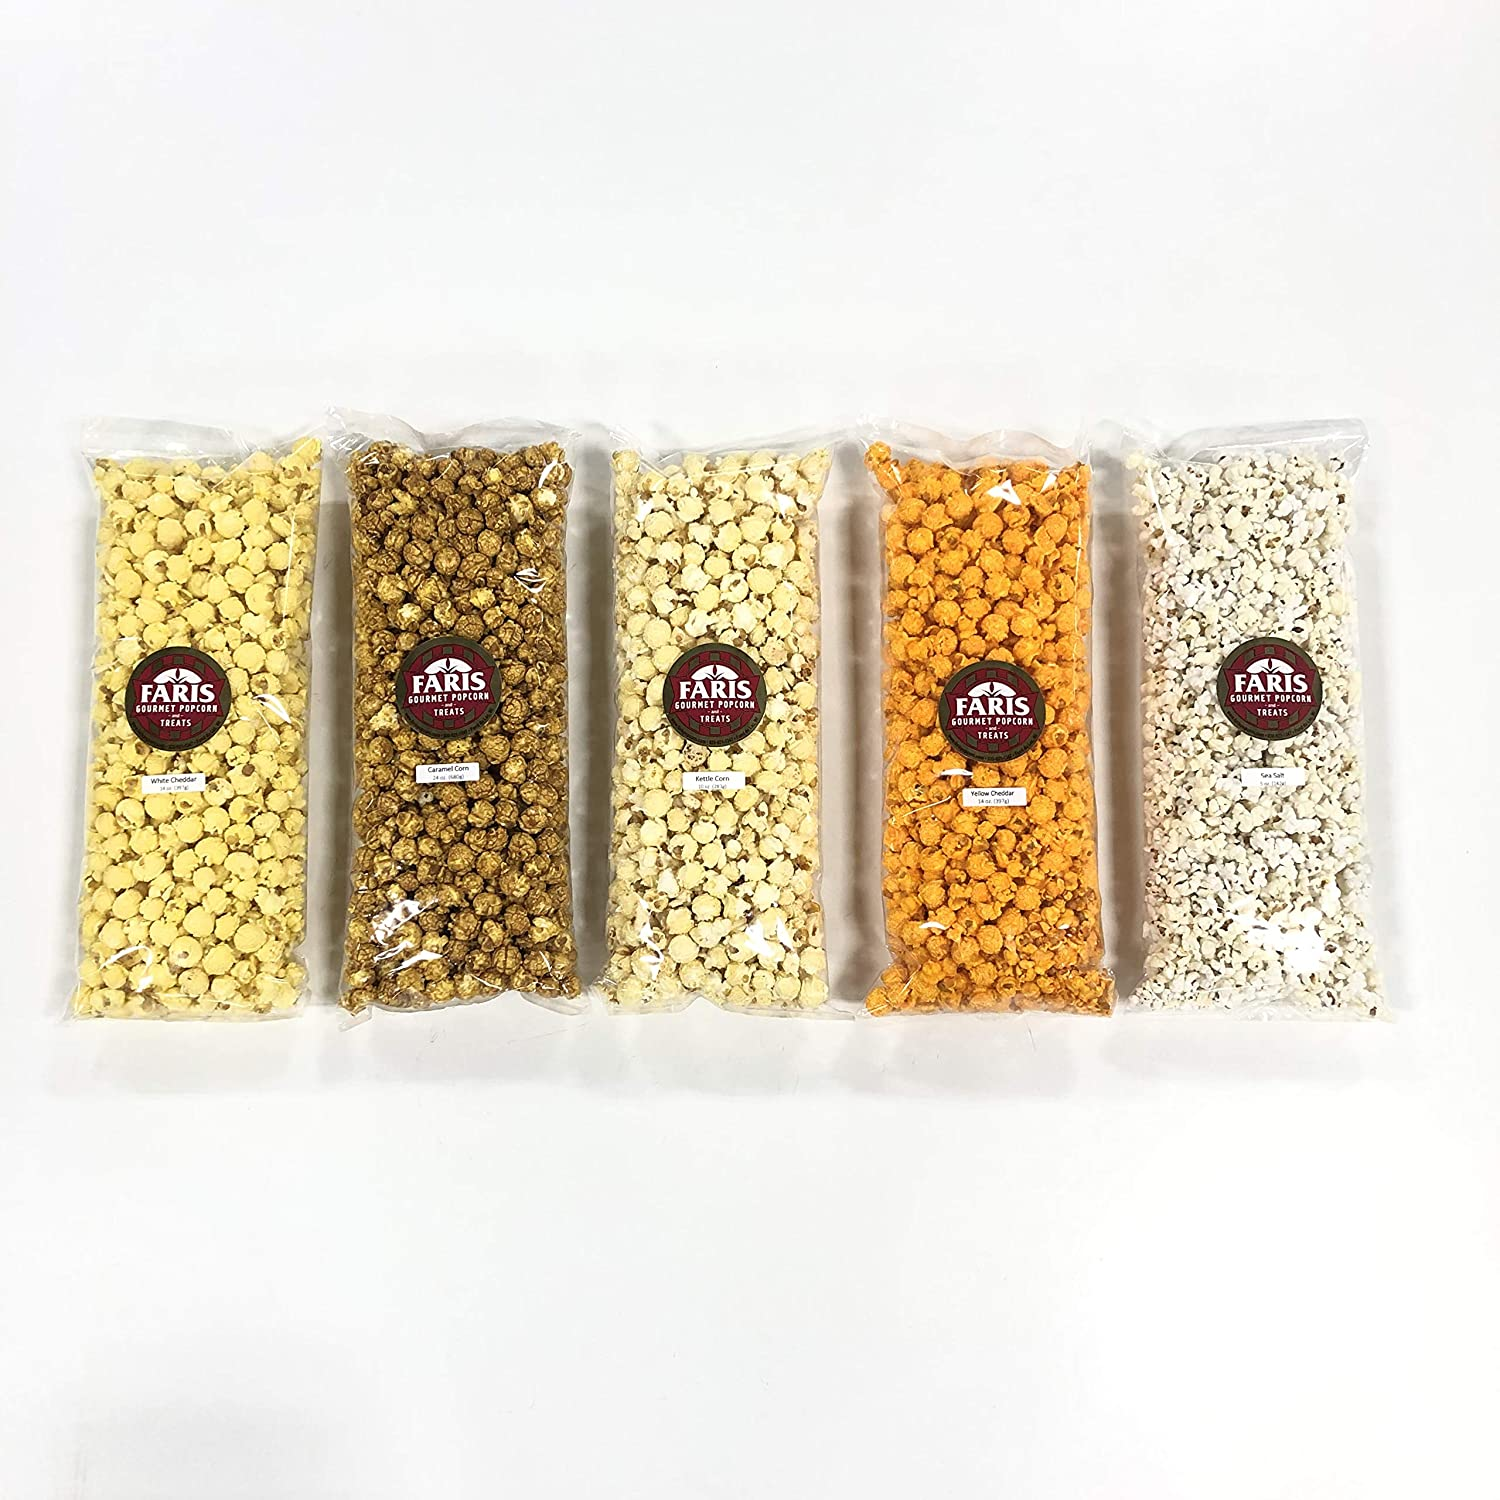 100% quality National products warranty Faris Gourmet Popcorn Large 5 Variety Pack CLASSIC Bag Party